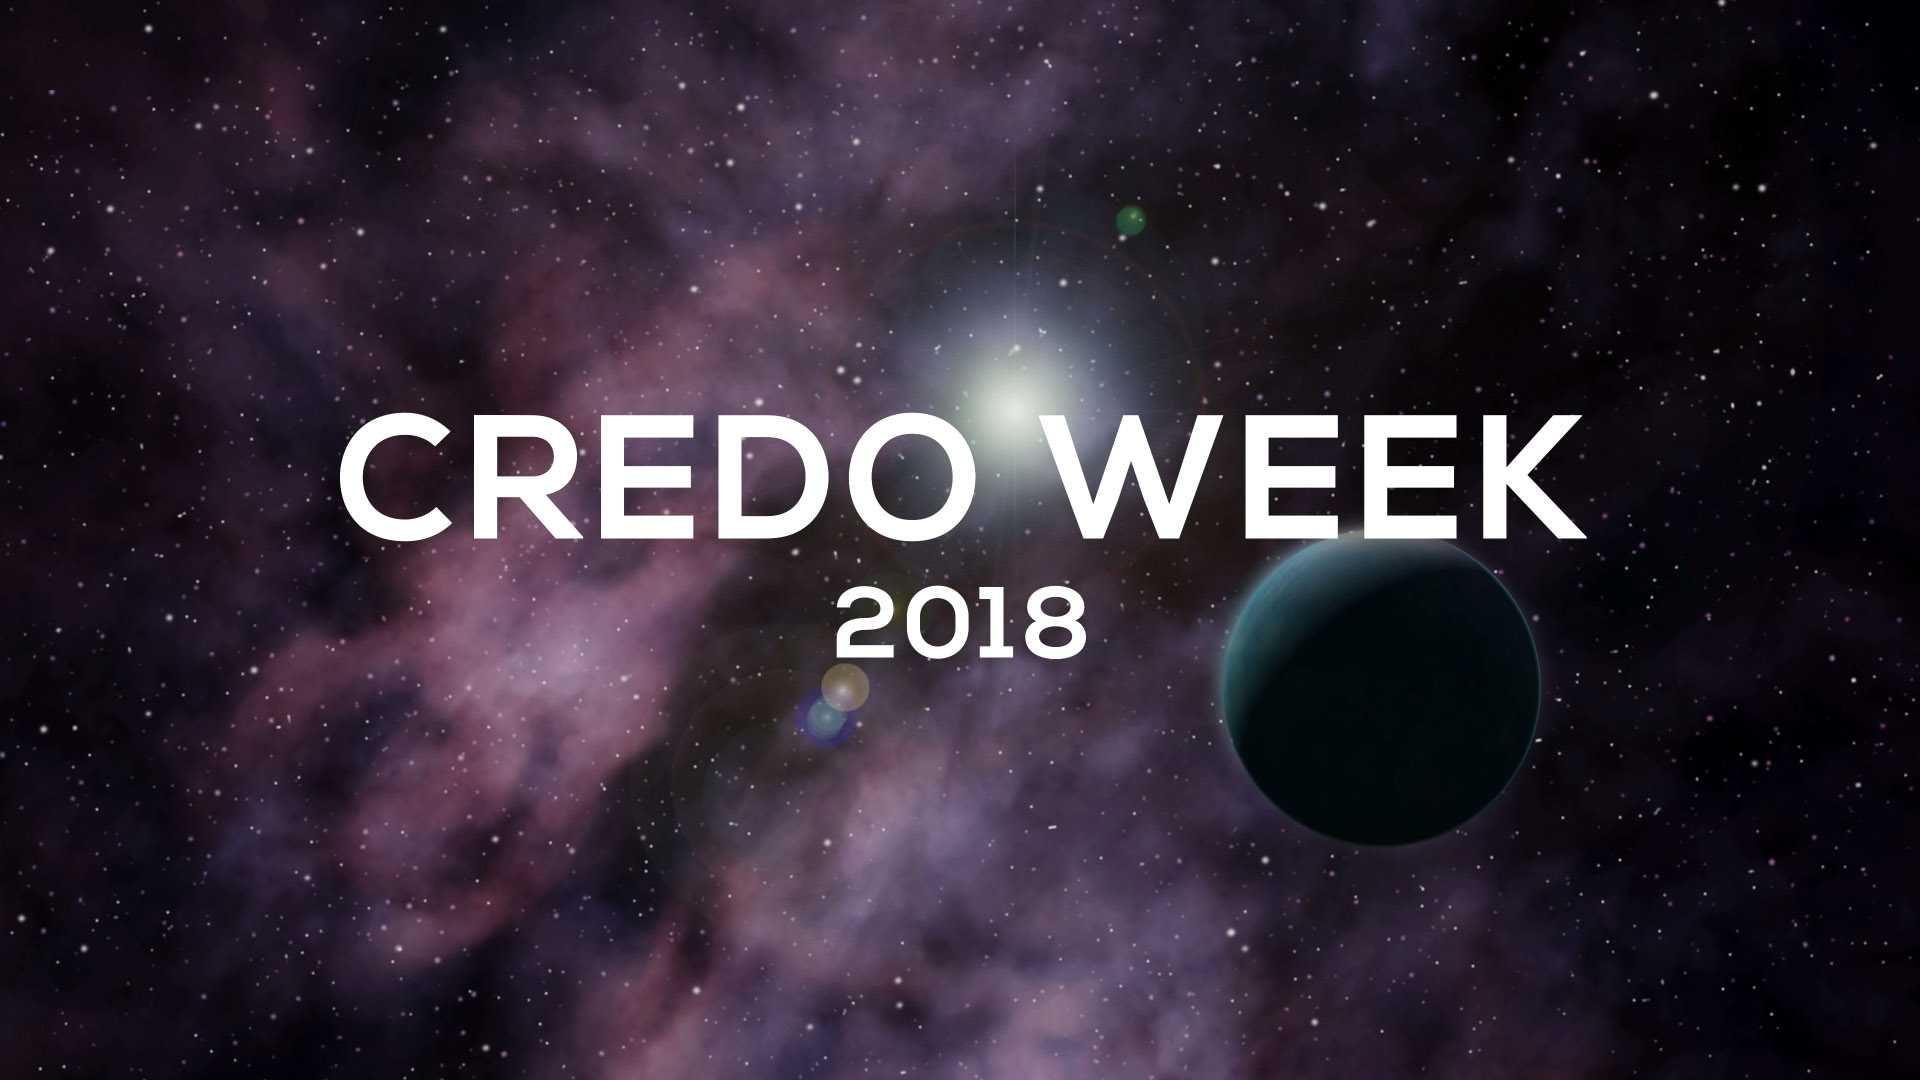 CREDO WEEK 2018 – The Cosmic-Ray Extremely Distributed Observatory Conference